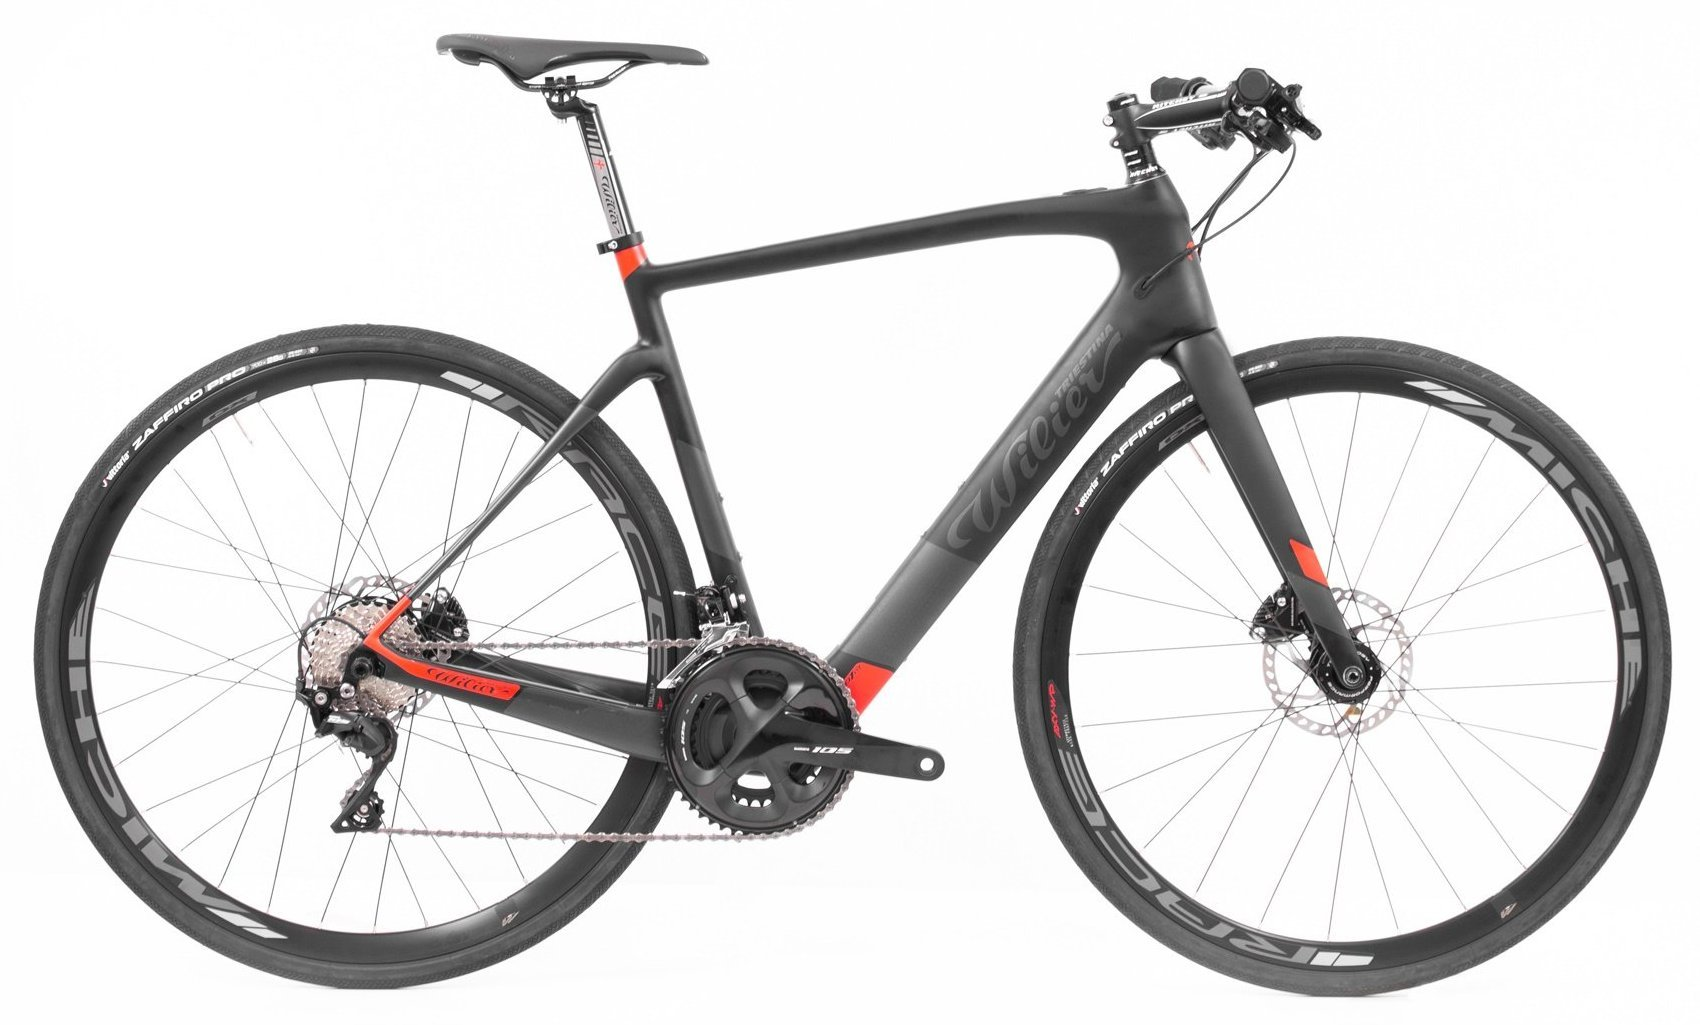 PERFORMANCE ROAD BIKES/ E-ROad Bikes - We now offer both conventional and electric performance road bikes. You now have the choice to take on Aspen's most grueling climbs by yourself or with a little bit of help. These are not as powerful as conventional E-bikes and are designed for the purist who just can't go where he or she used to. If you have a preference on the type of bike you'd like to ride, please leave a comment in the 'Comments' section on your reservation form. Whatever you select, you will have a bike ready to climb the beautiful rides surrounding Aspen.For riders planning to use clipless pedals, we recommend bringing your own shoes and pedals or confirming pedal-only availability with us.4 hours $65/$8524 hours $100/120Week $500